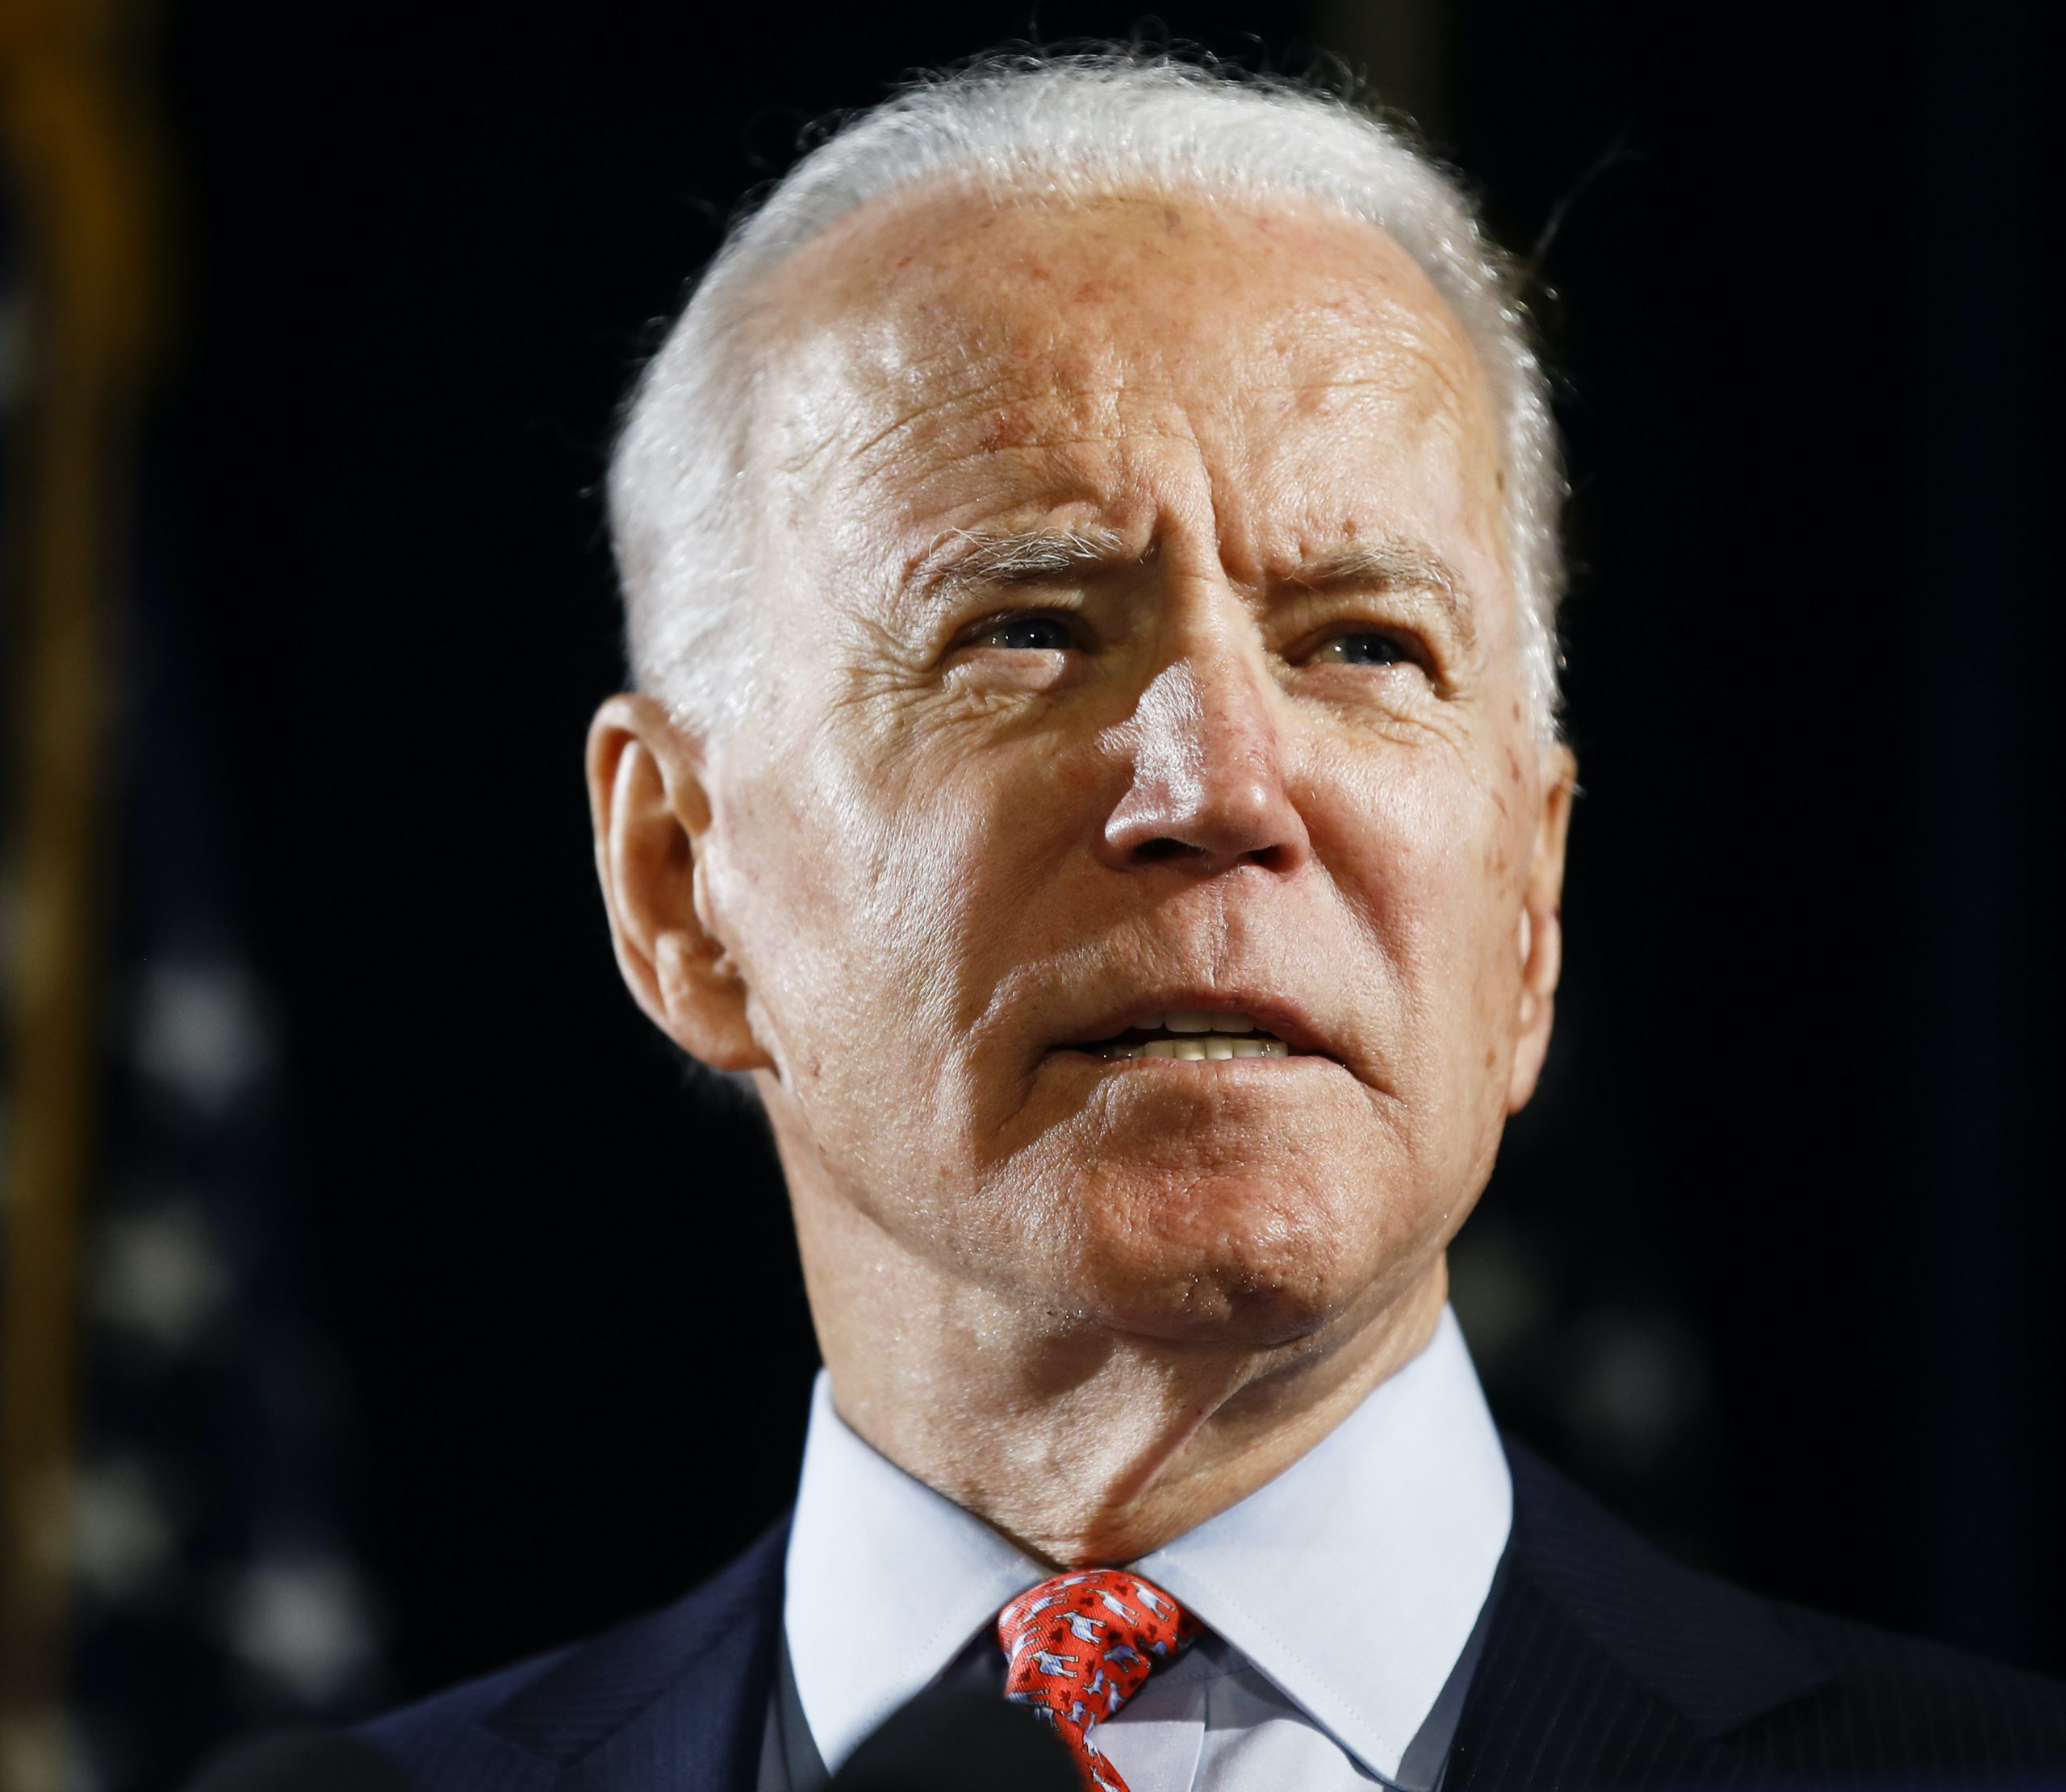 UN Relief Agency Contacts Joe Biden for Resuming Funds